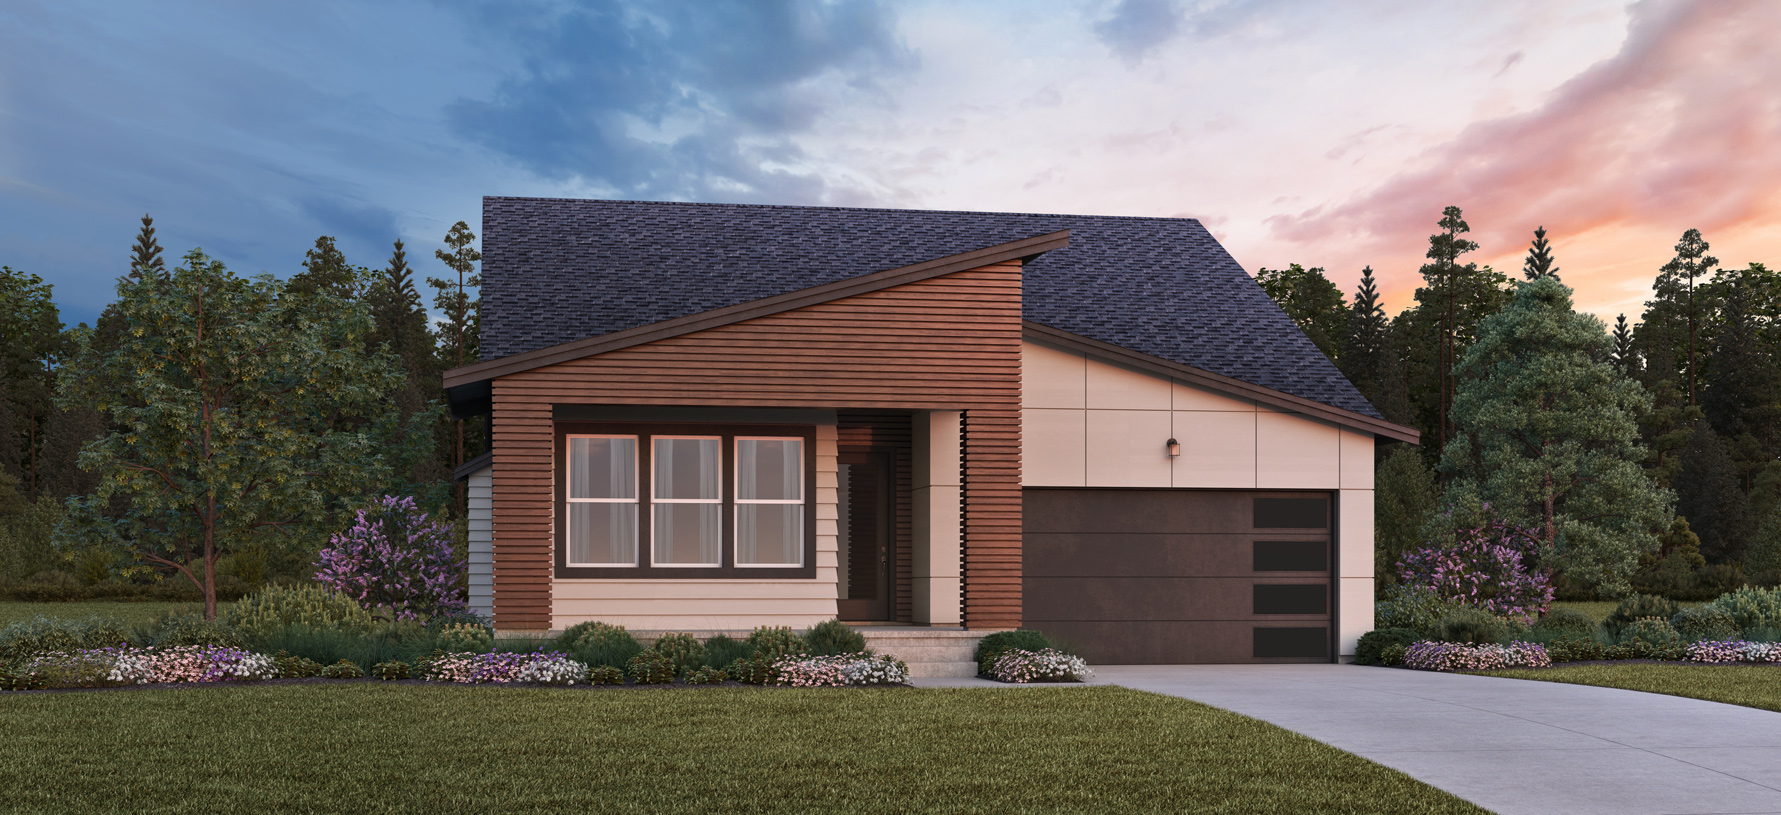 The community will offer single-story home designs including the modern Orchid shown